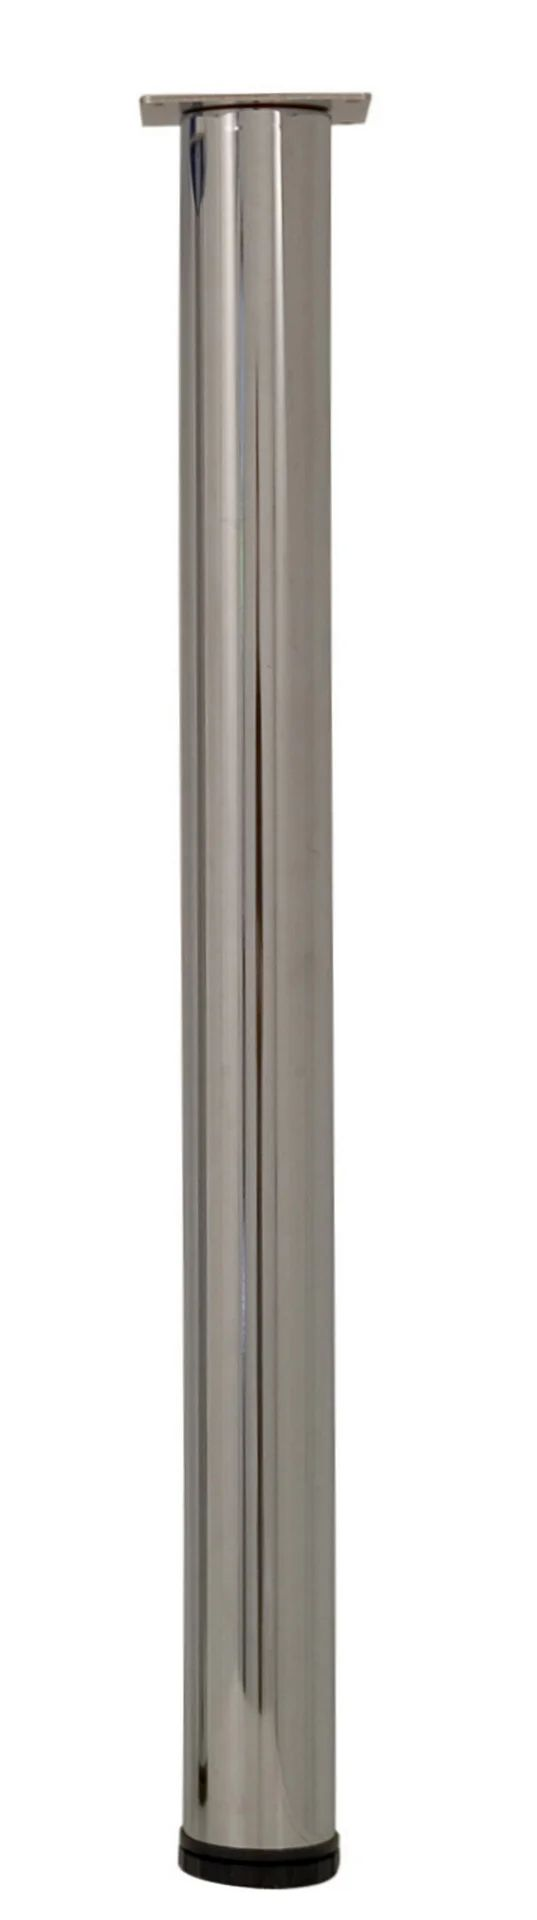 Pied De Table Cylindrique Reglable Acier Chrome Gris De 70 A 73 Cm Leroy Merlin